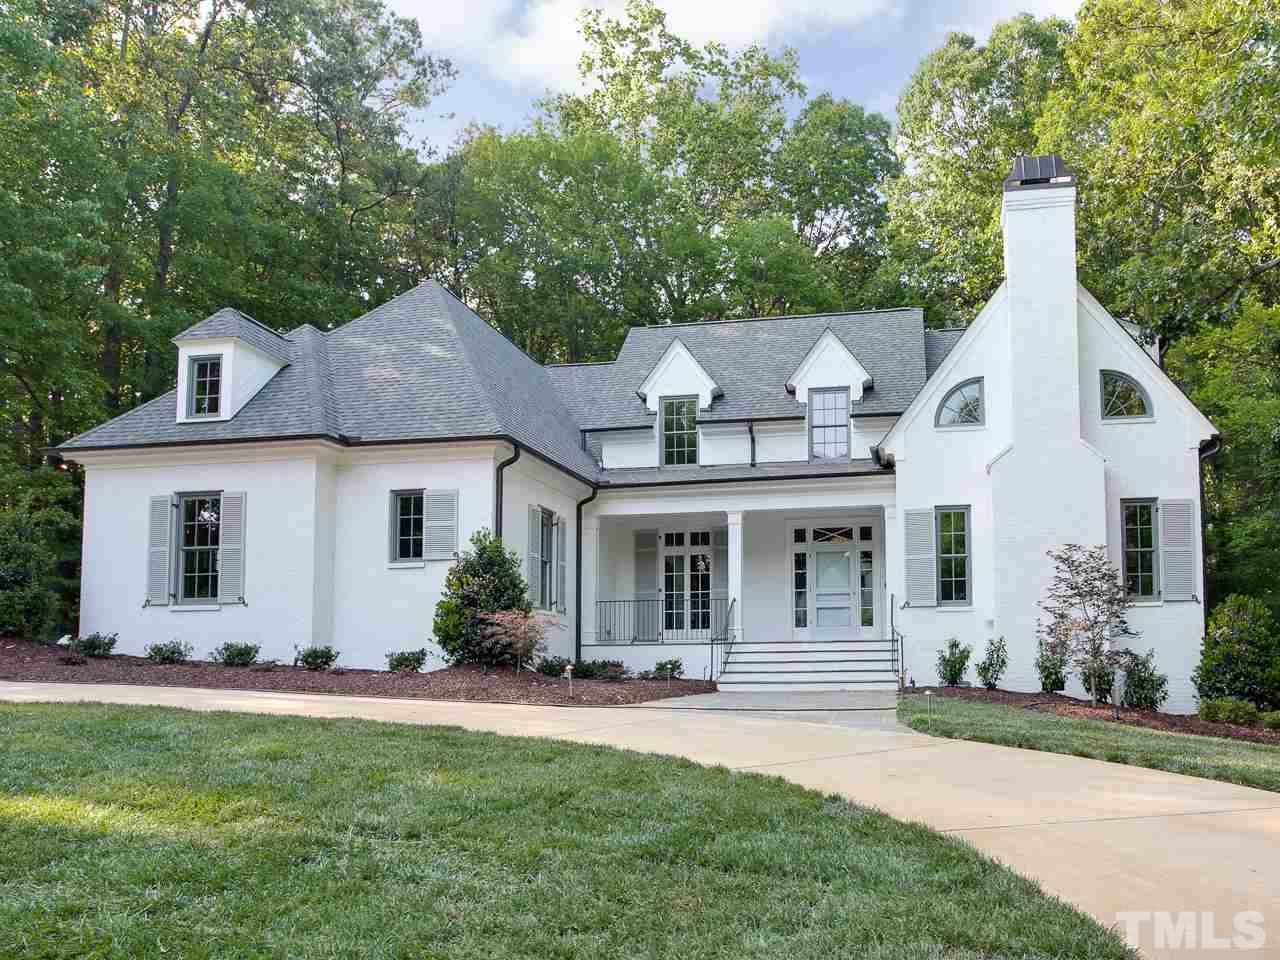 Another Stunning Creation From Award Winning DJF Builders. Full of all the exquisite details you've come to expect from a DJF creation, this home will not disappoint. From the private lot to the open sprawling floor plan, nothing has been overlooked. 1st floor owners suite, library, inspiring kitchen, charming office space, two laundry areas & the list goes on. Want to add a few extra details? This is a custom home & we welcome your buyer's input to help them make it their perfect dream home!